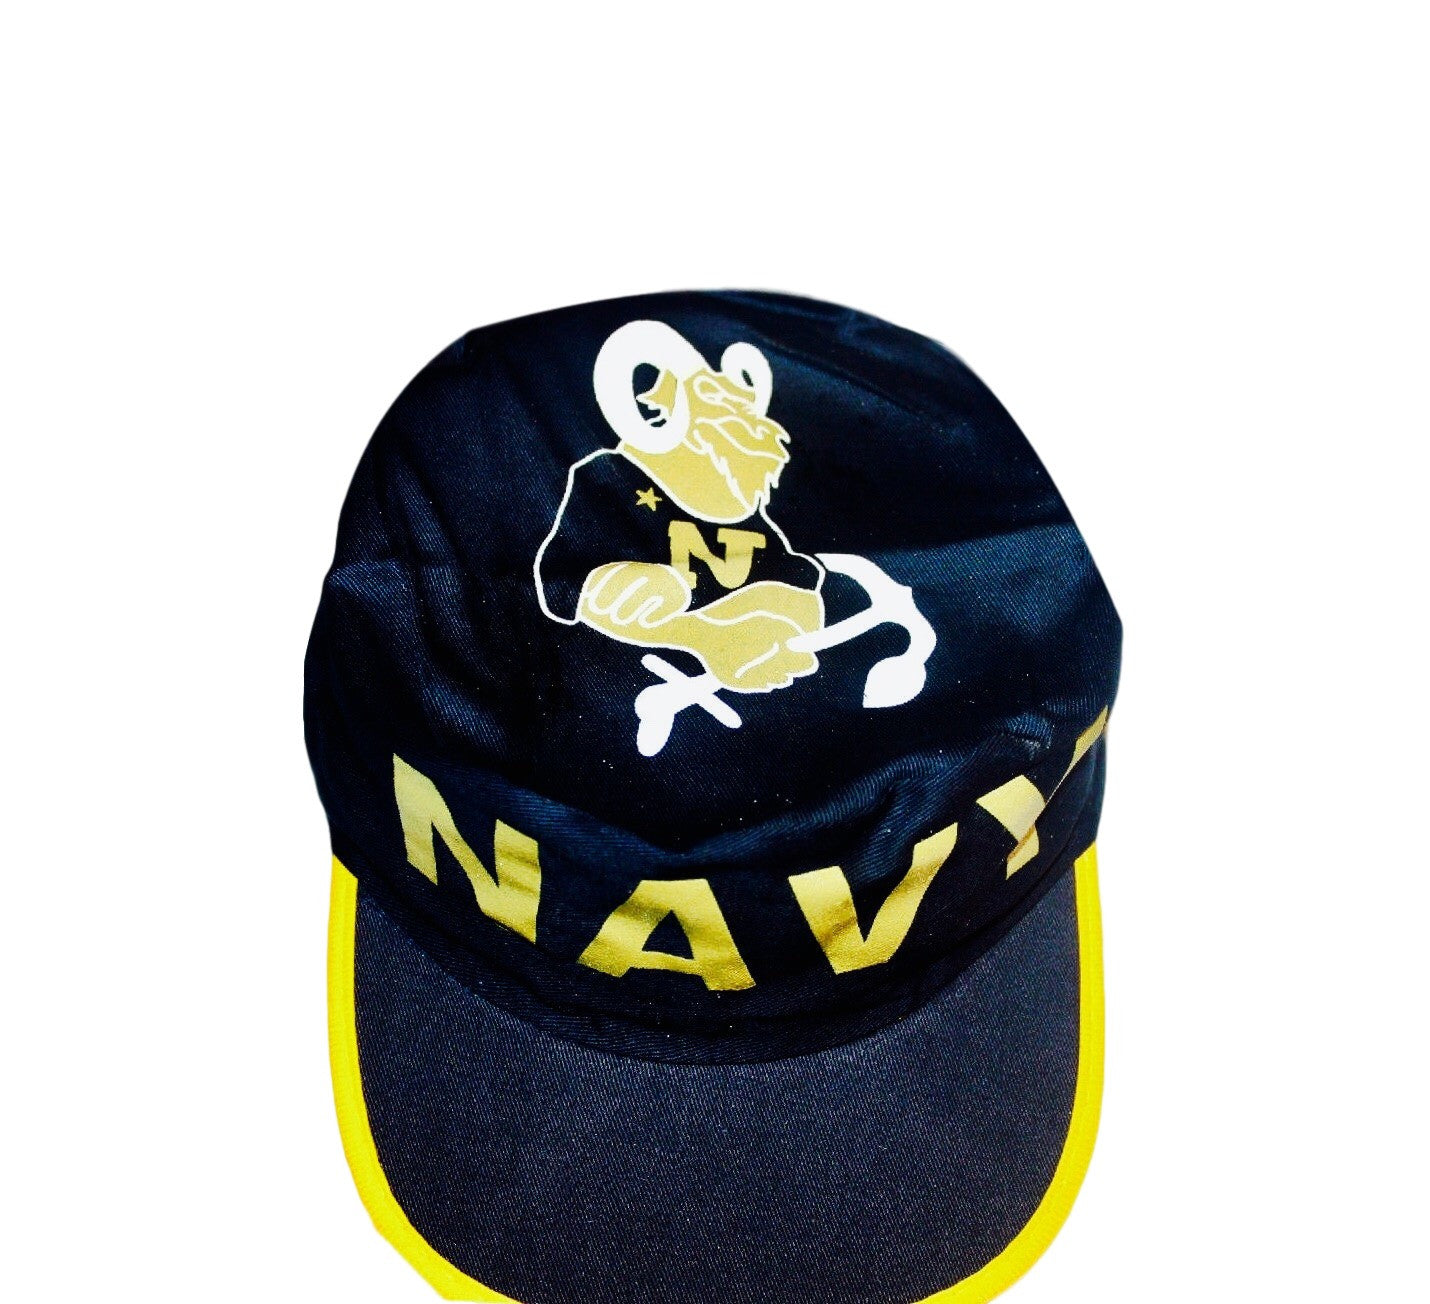 Midshipmen 80's Painters Cap - And Still